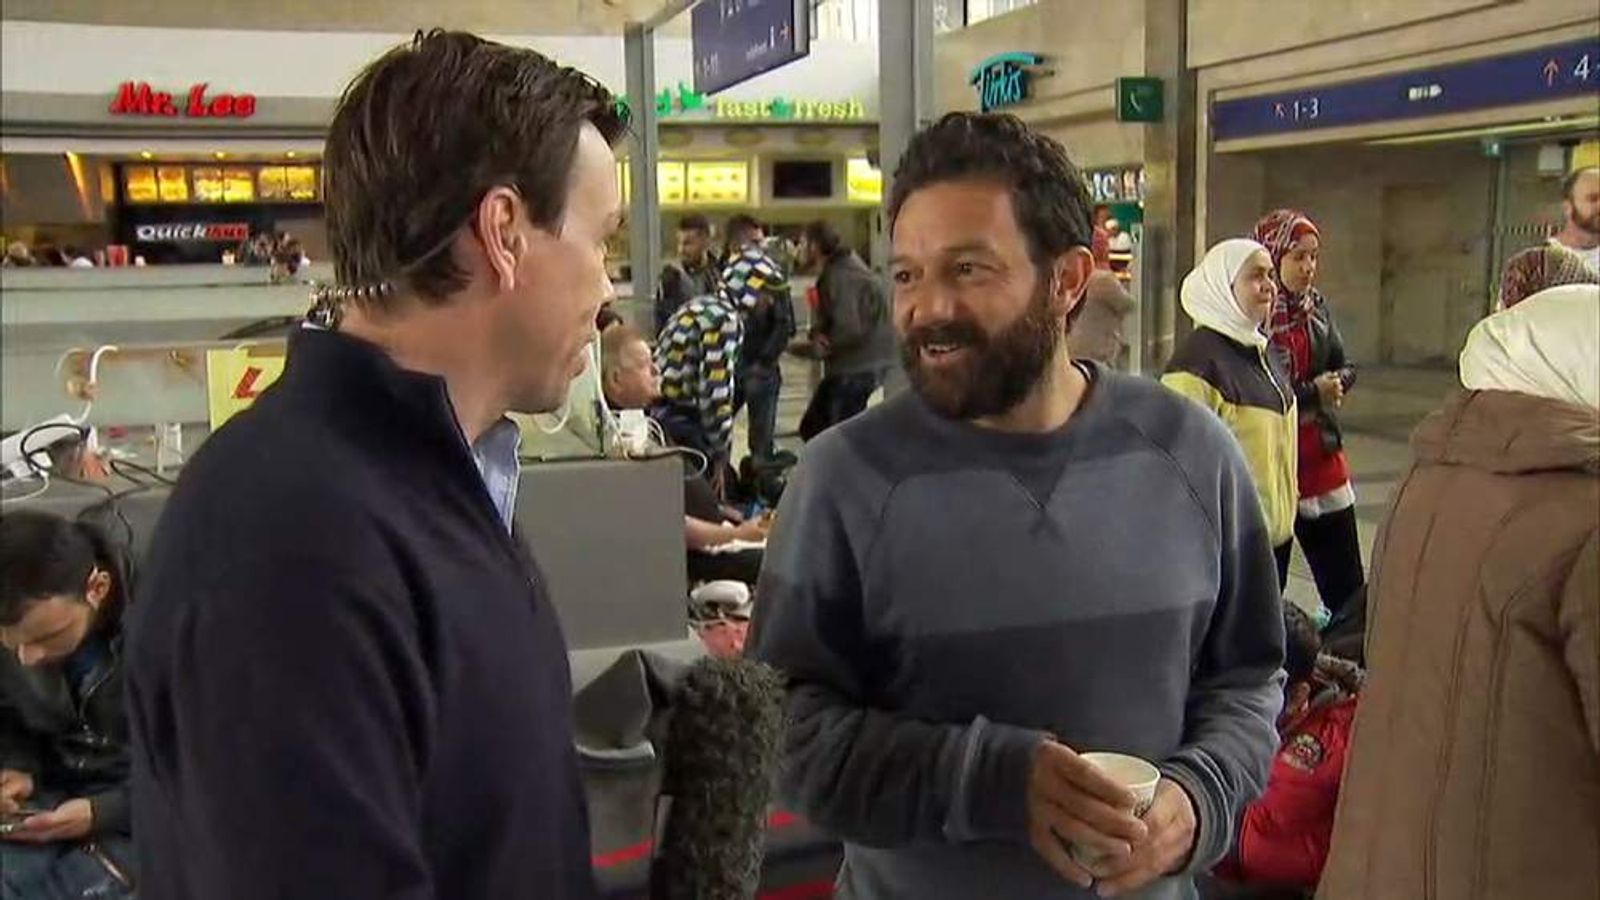 Sky News' Mark Stone is stopped by a Syrian man who wants to thank Austria